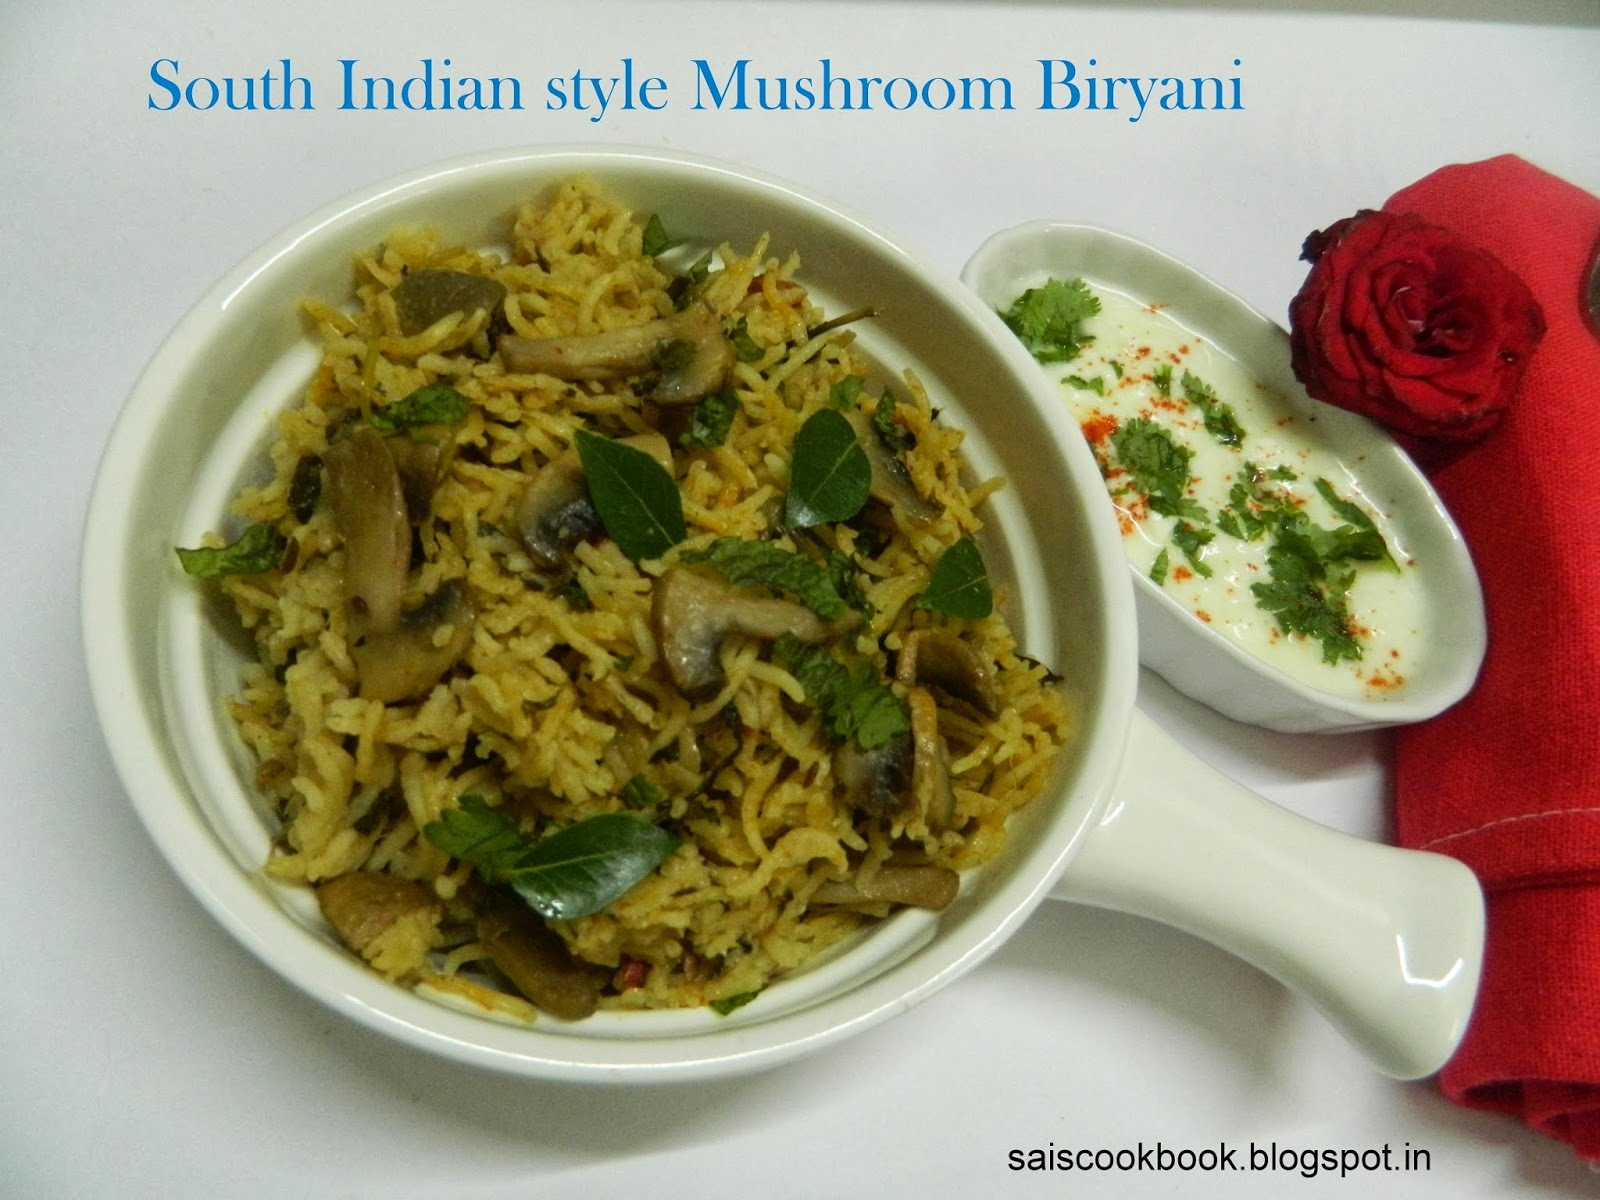 South Indian Style Mushroom Biryani